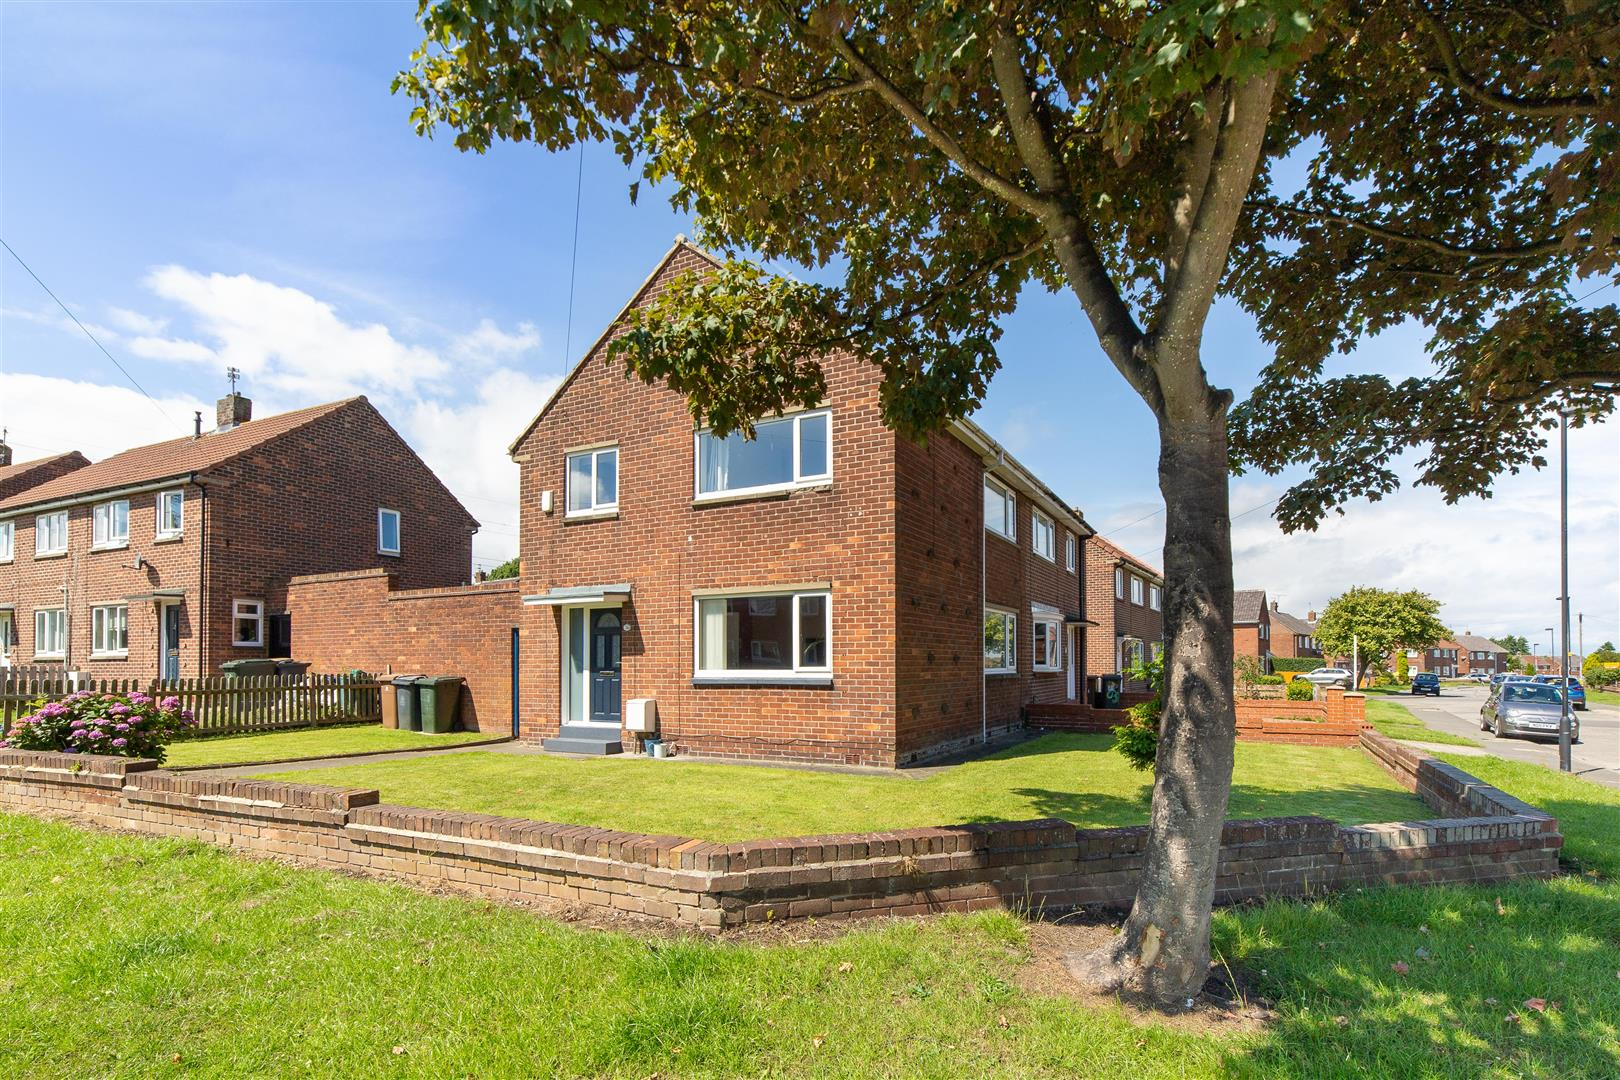 3 bed semi-detached house for sale in Newcastle Upon Tyne, NE27 0QA - Property Image 1